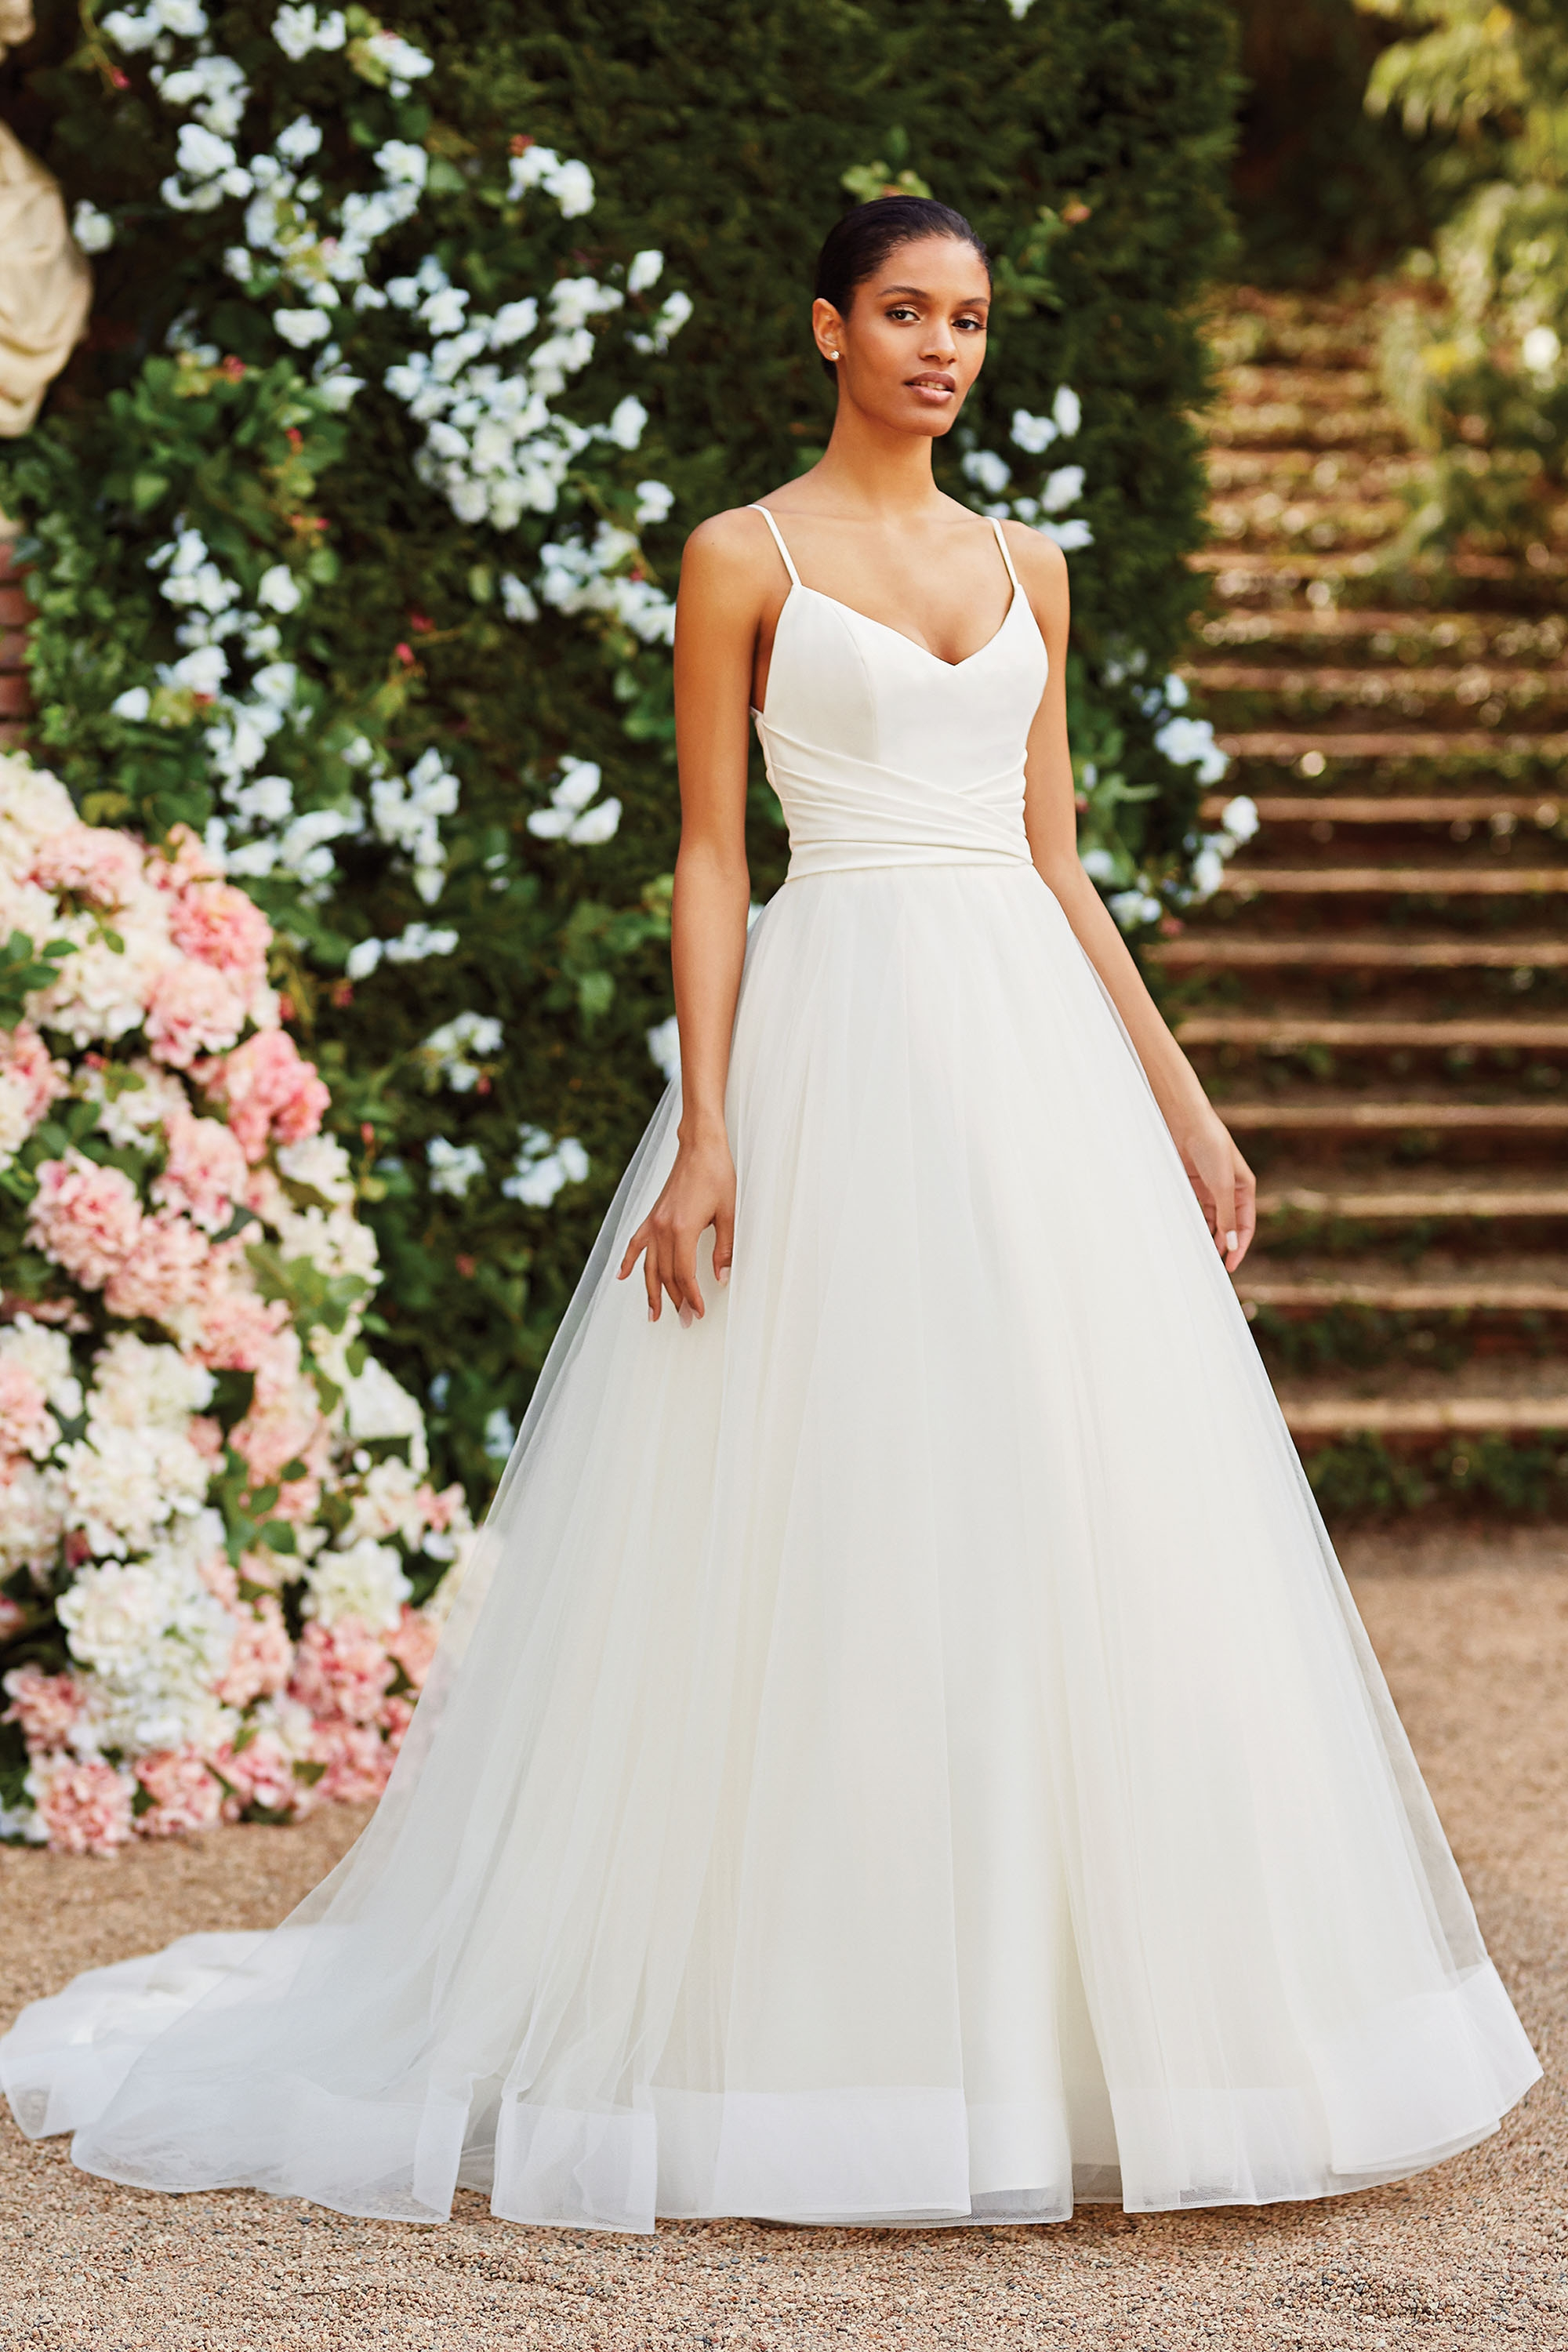 44181 - Simple yet elegant spaghetti tulle ball gown, features satin bodice